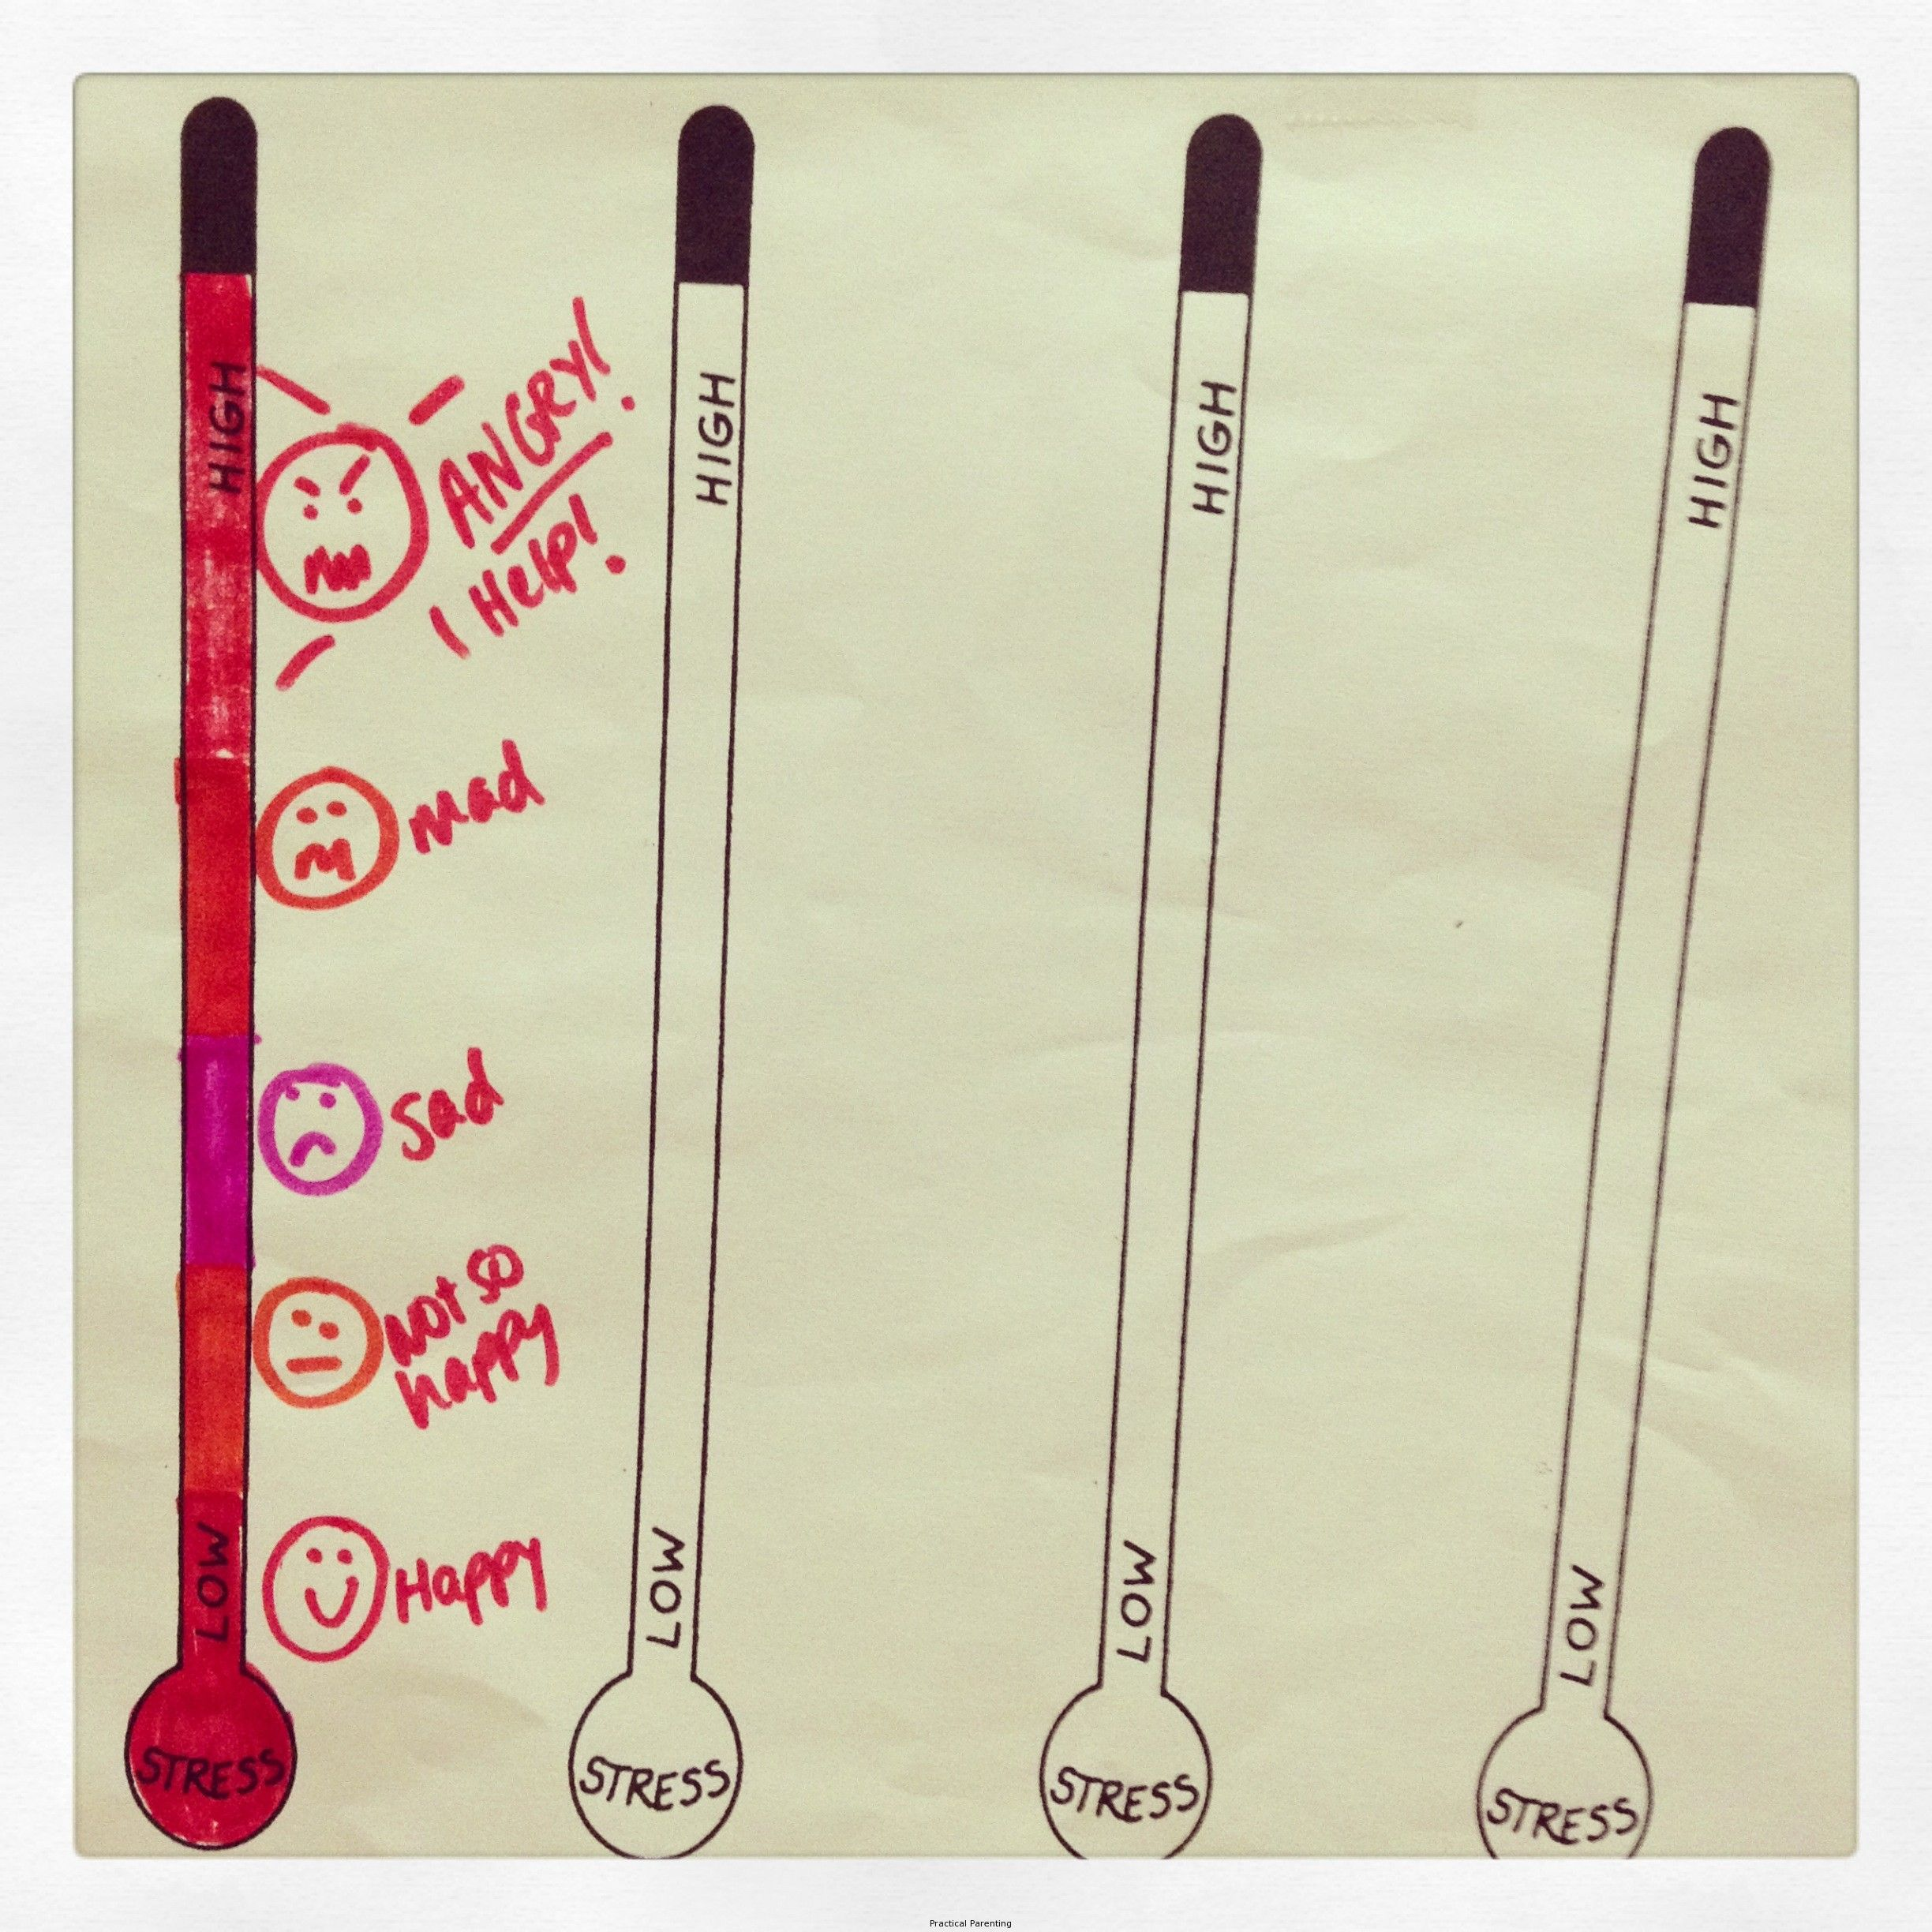 The Feelings Thermometer